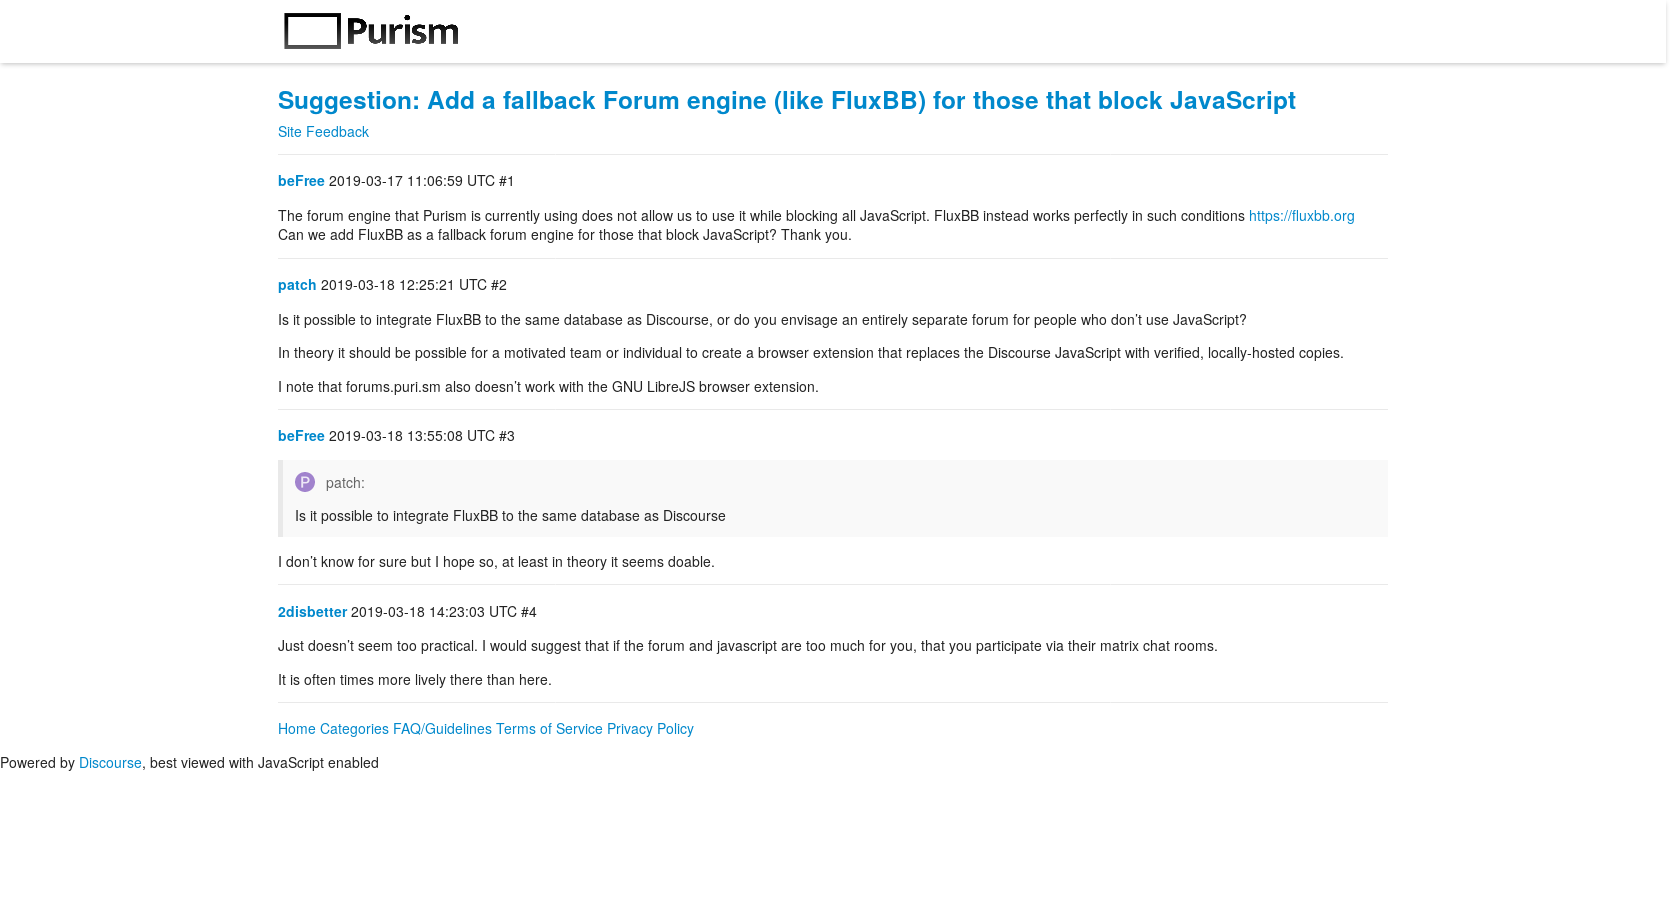 Suggestion: Add a fallback Forum engine (like FluxBB) for those that